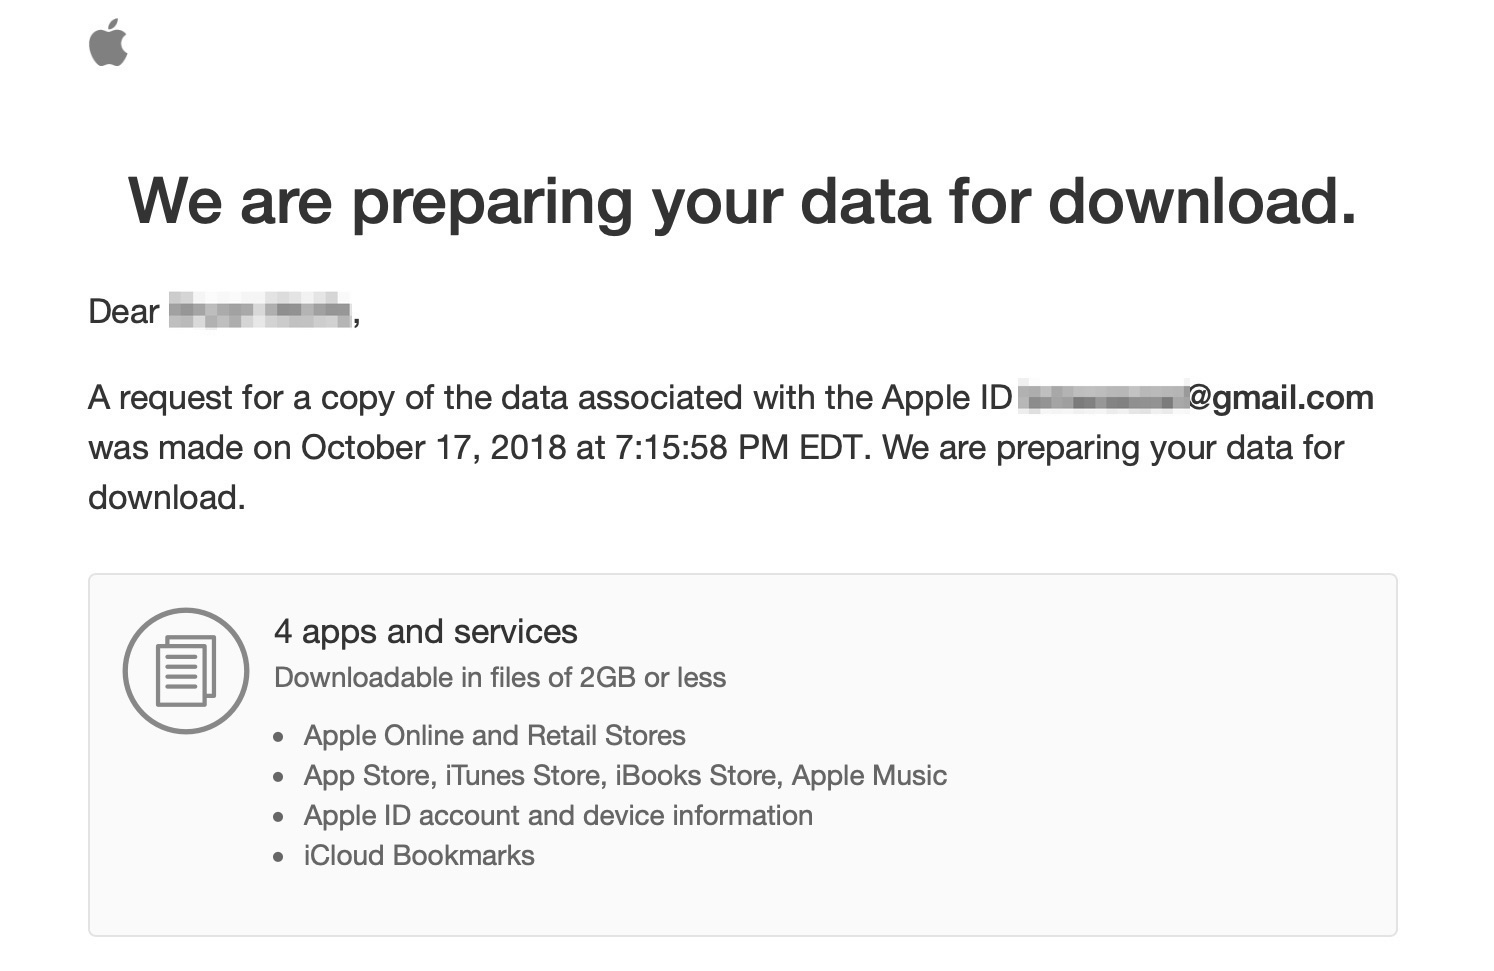 preparing your data for download